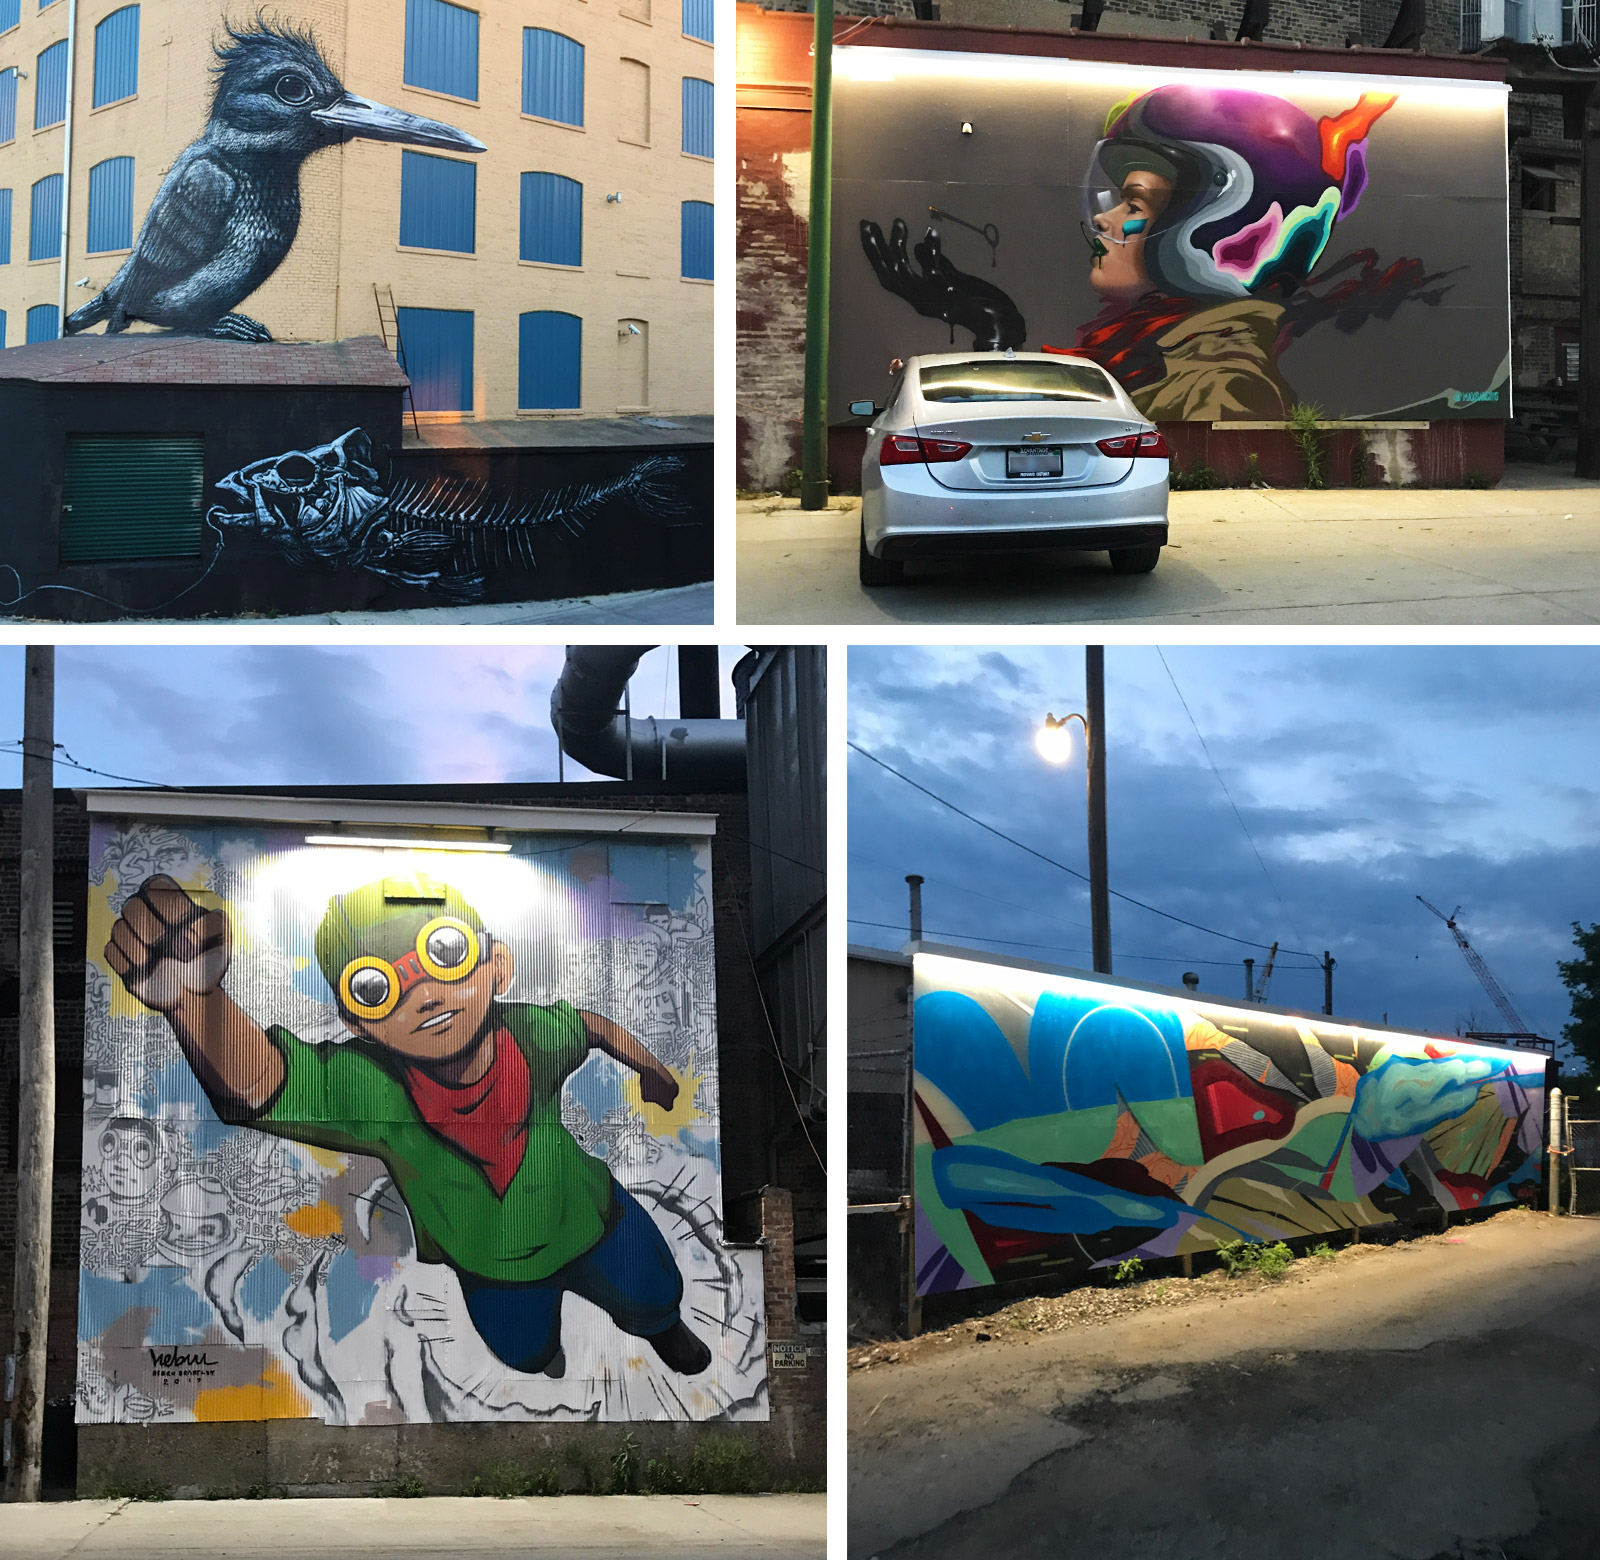 Street art murals including Hebru Brantley's on Mendell Street in Chicago—No More Rahm